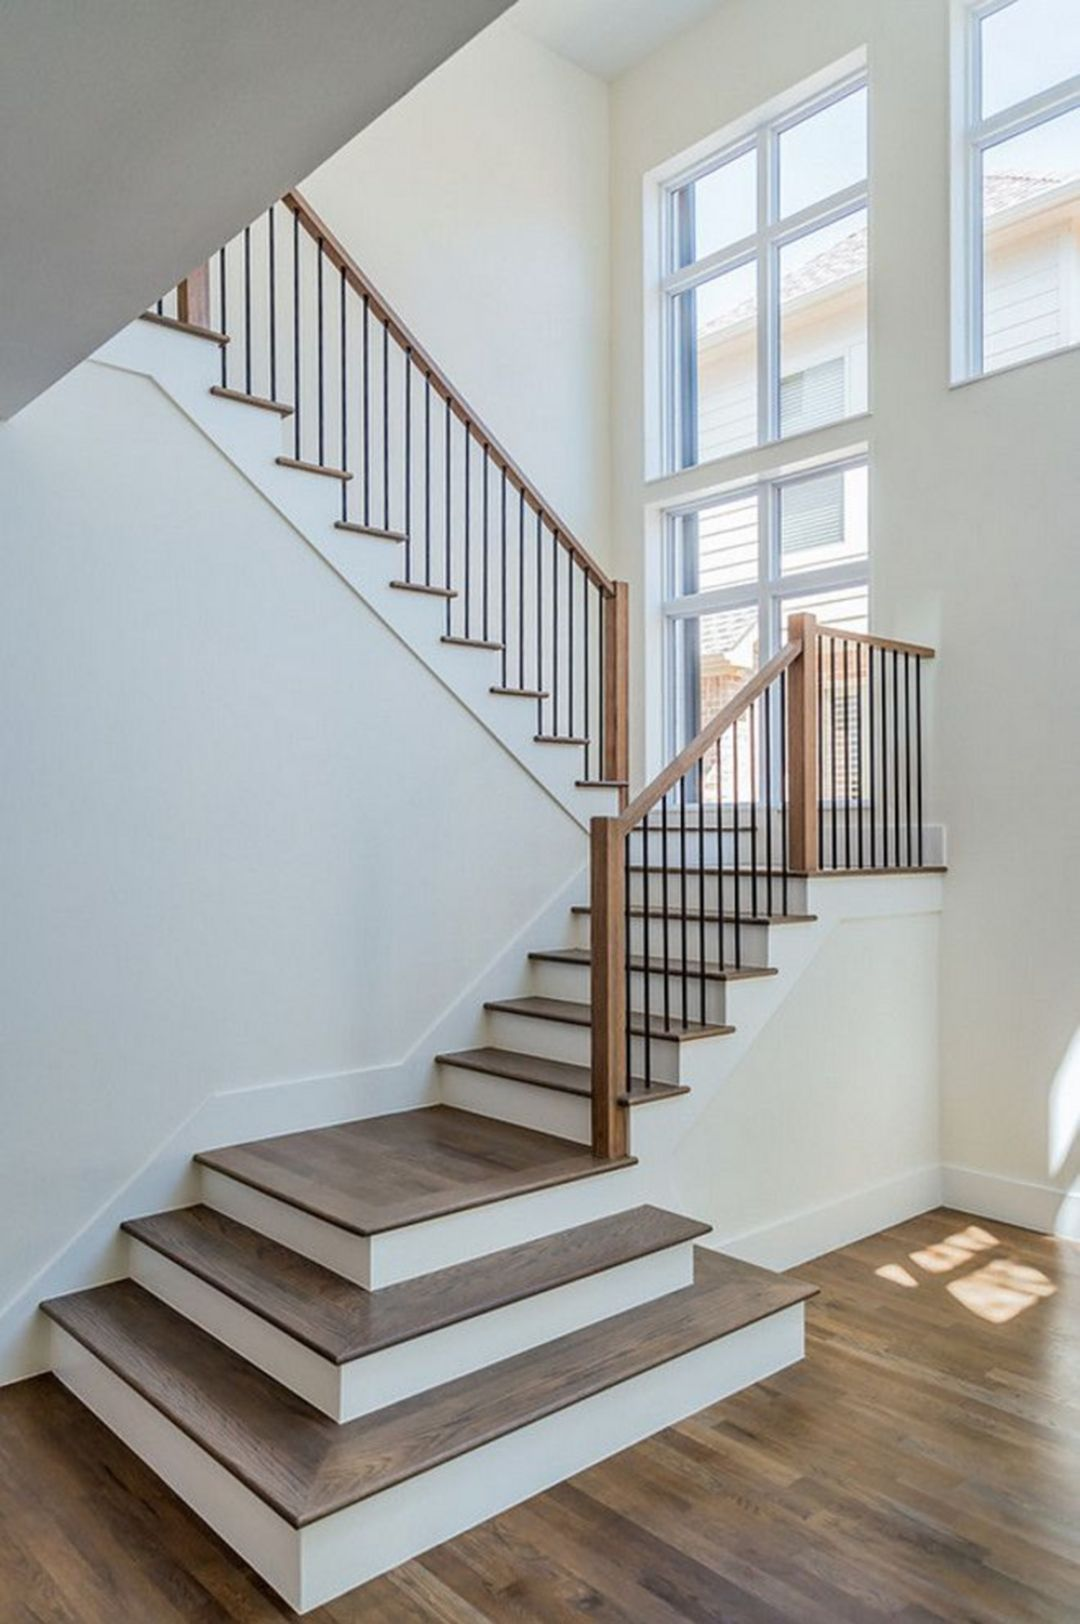 30 Marvelous And Creative Indoor Wood Stairs Design Ideas You